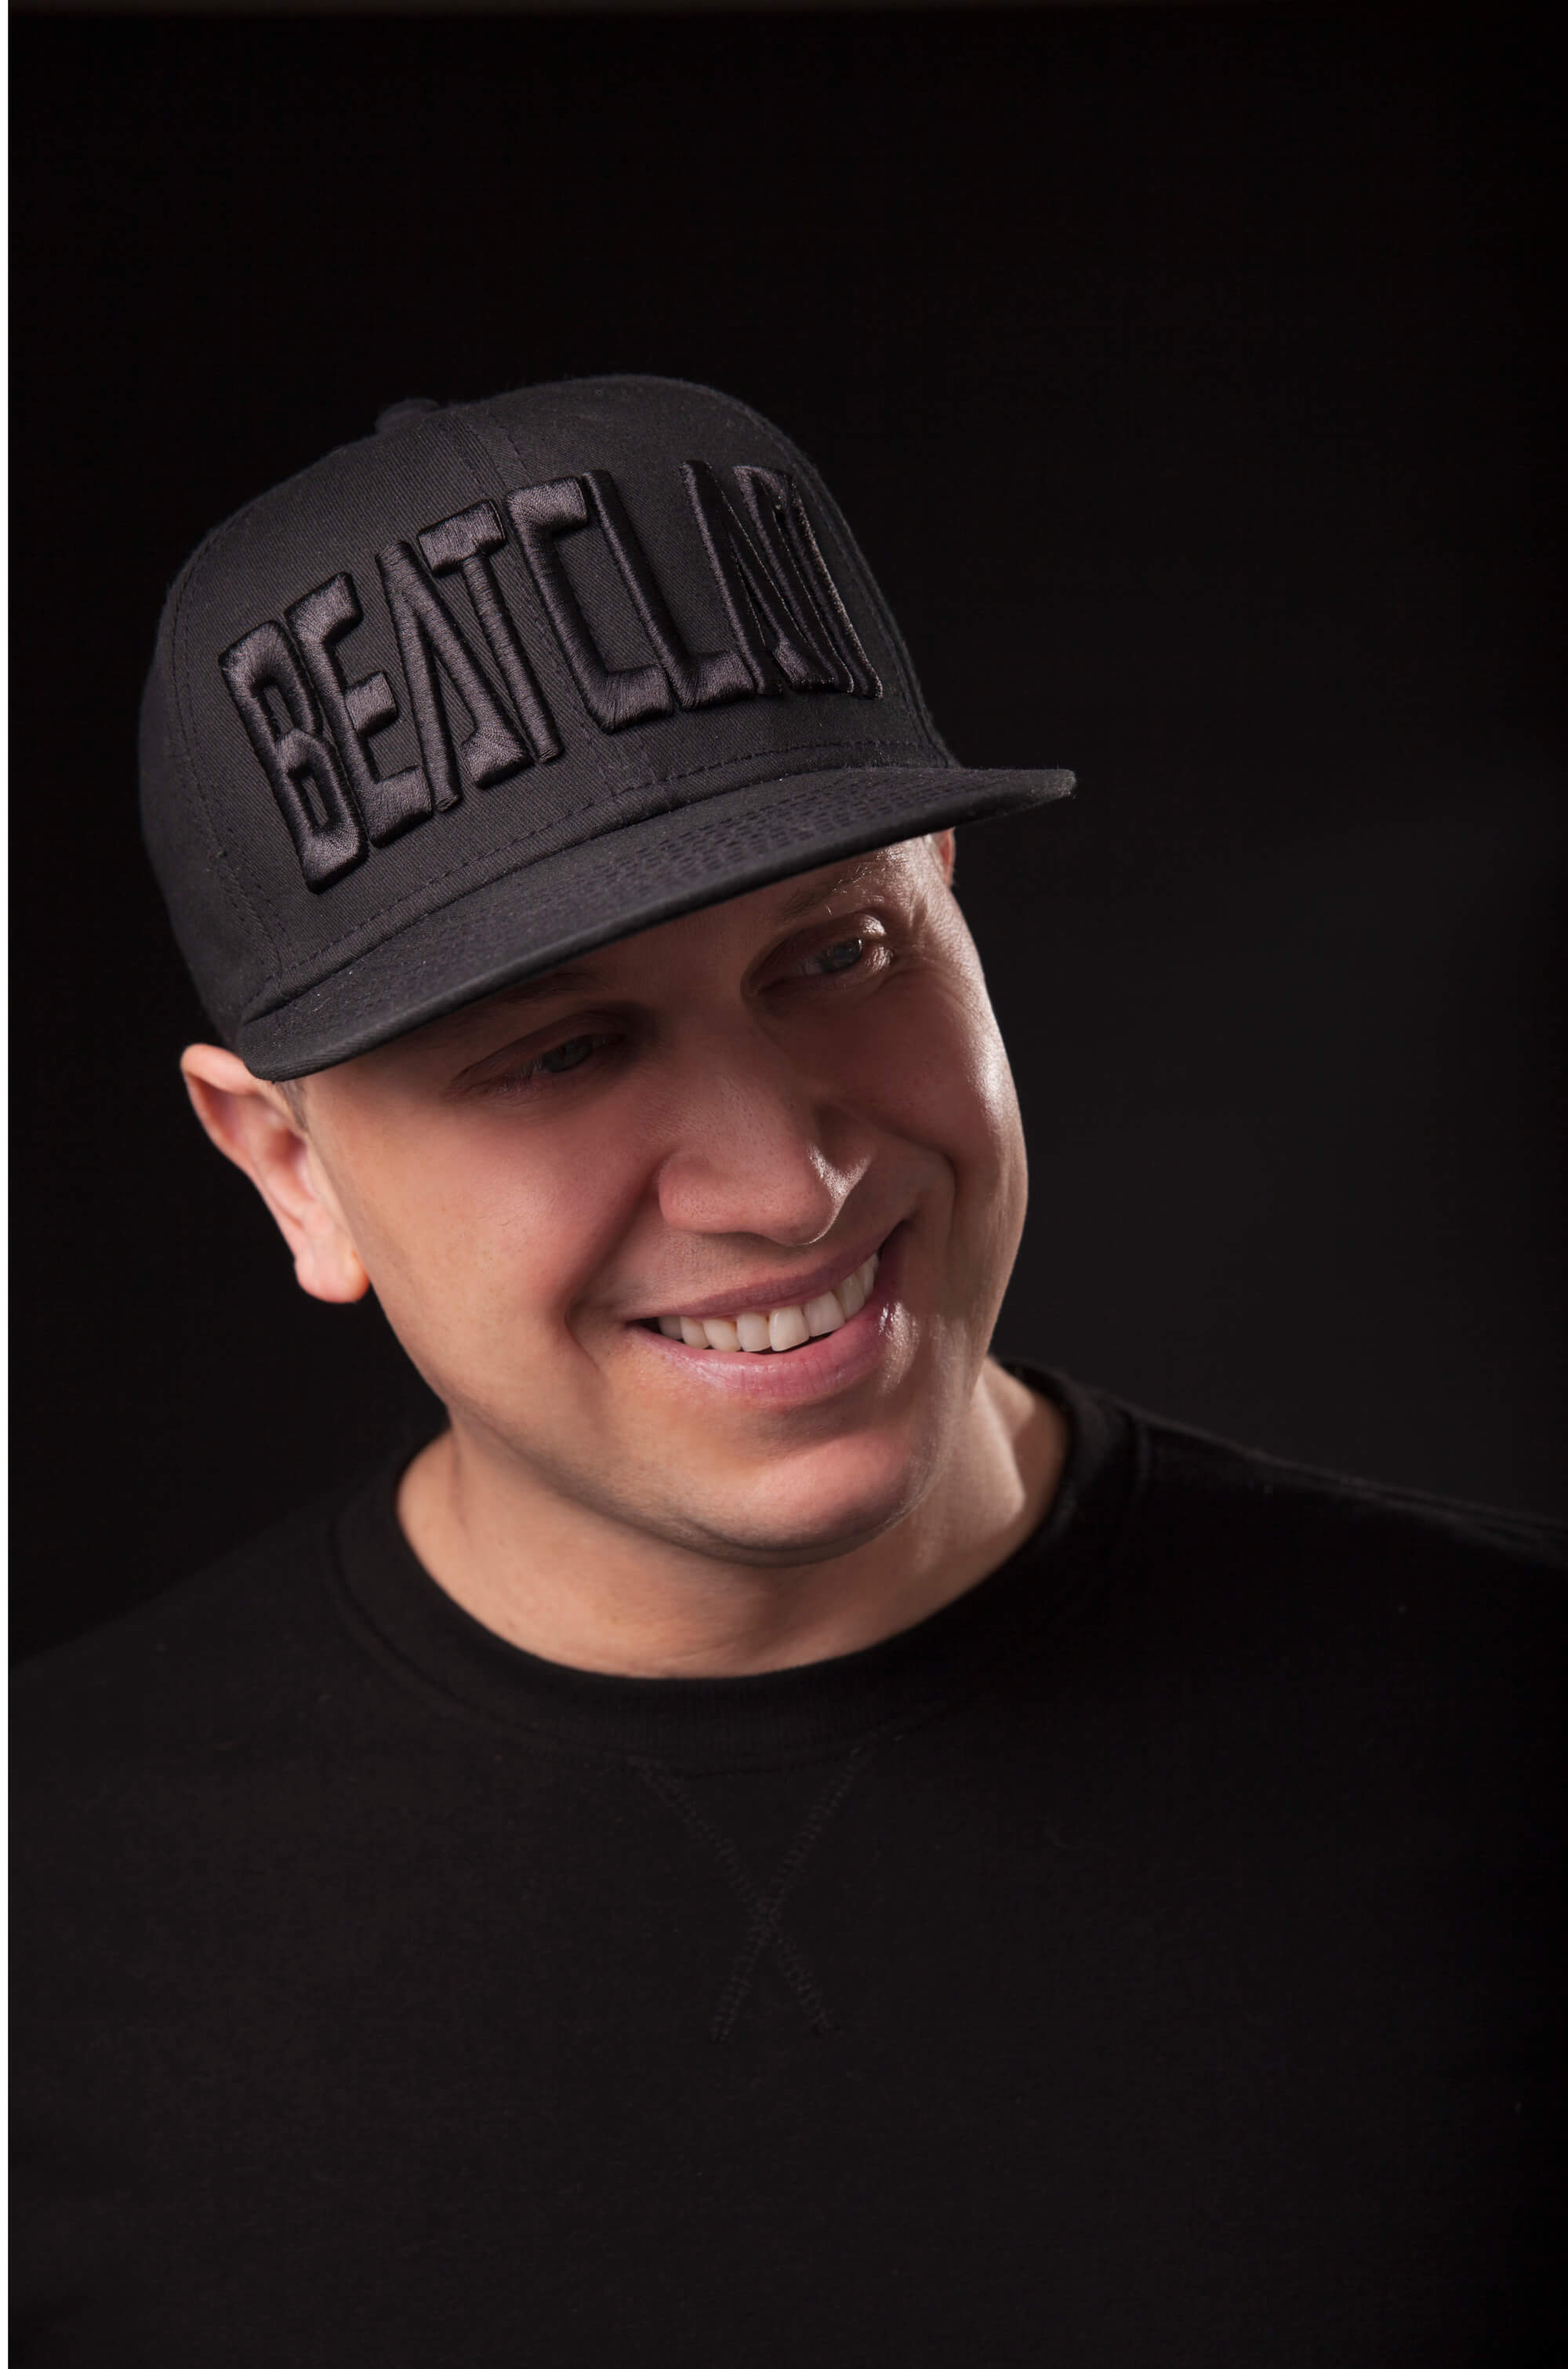 SKAM Artist DJ Hollywood wearing Beatclan cap - Meet the SKAM Artist